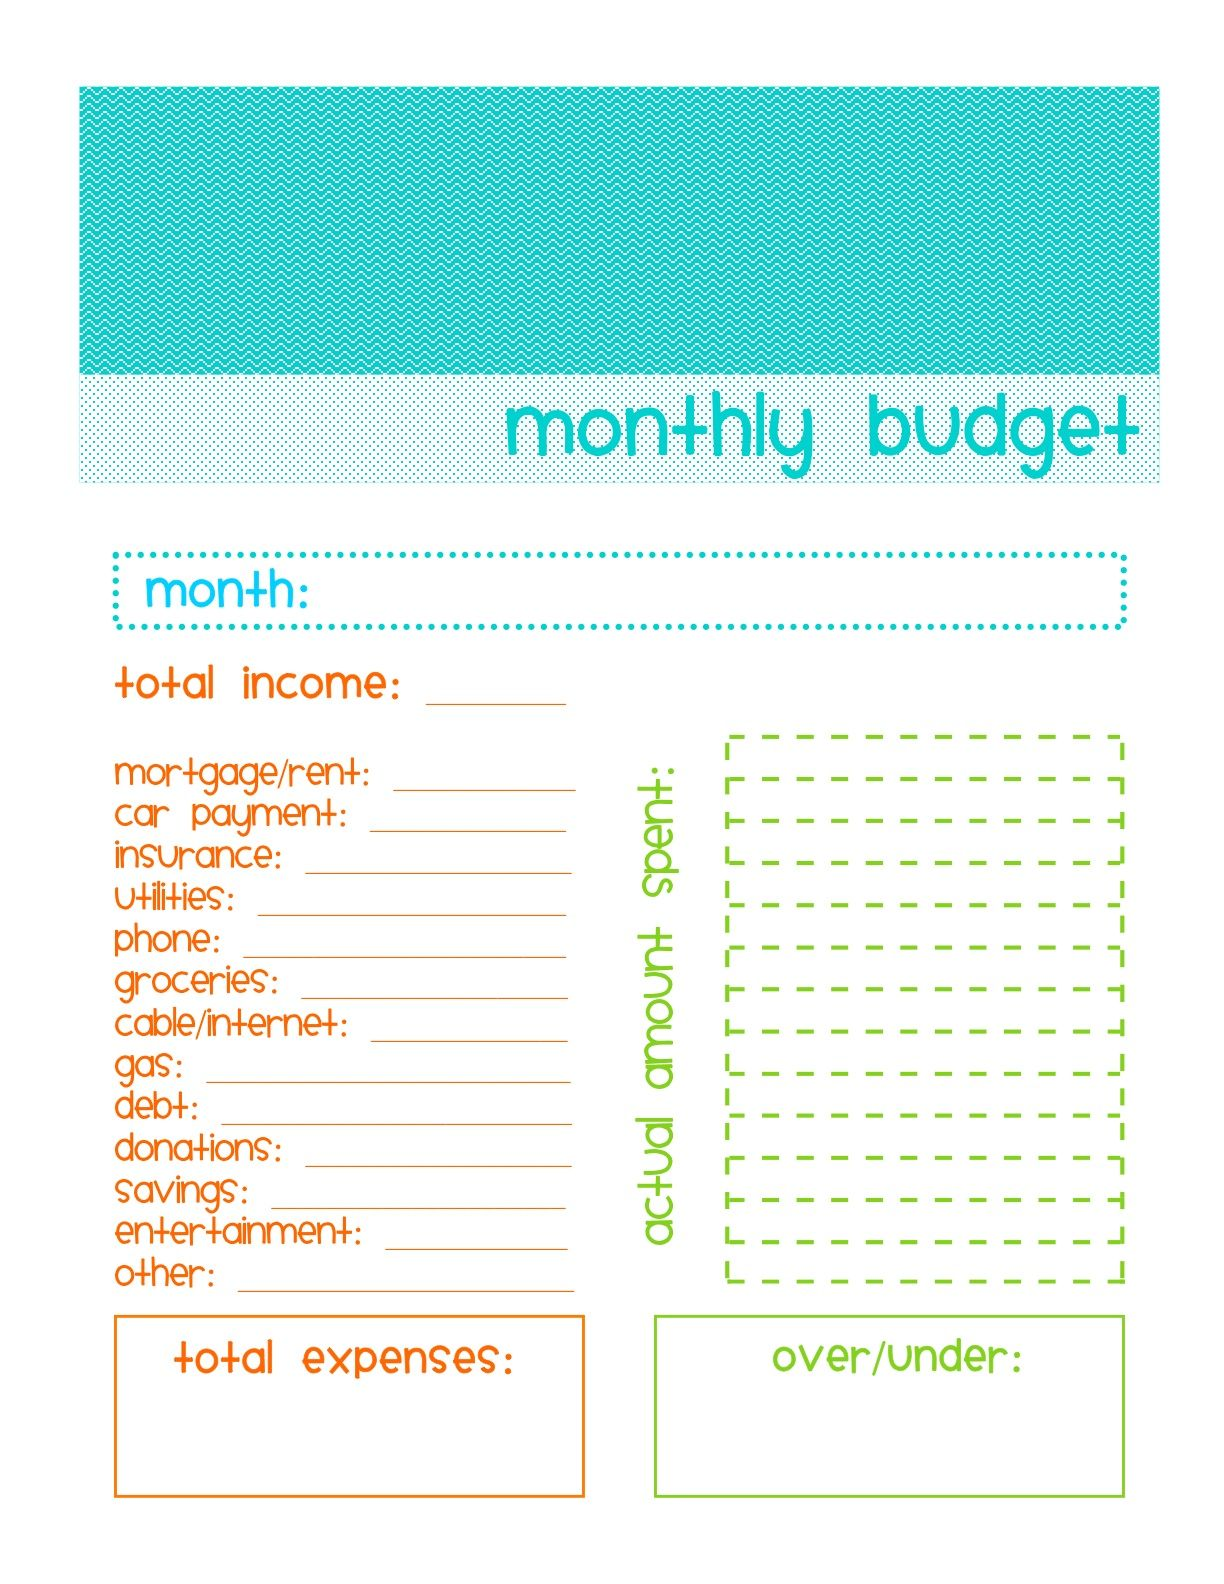 FREE Monthly Budgeting Worksheet | .....Organize MY Life ...